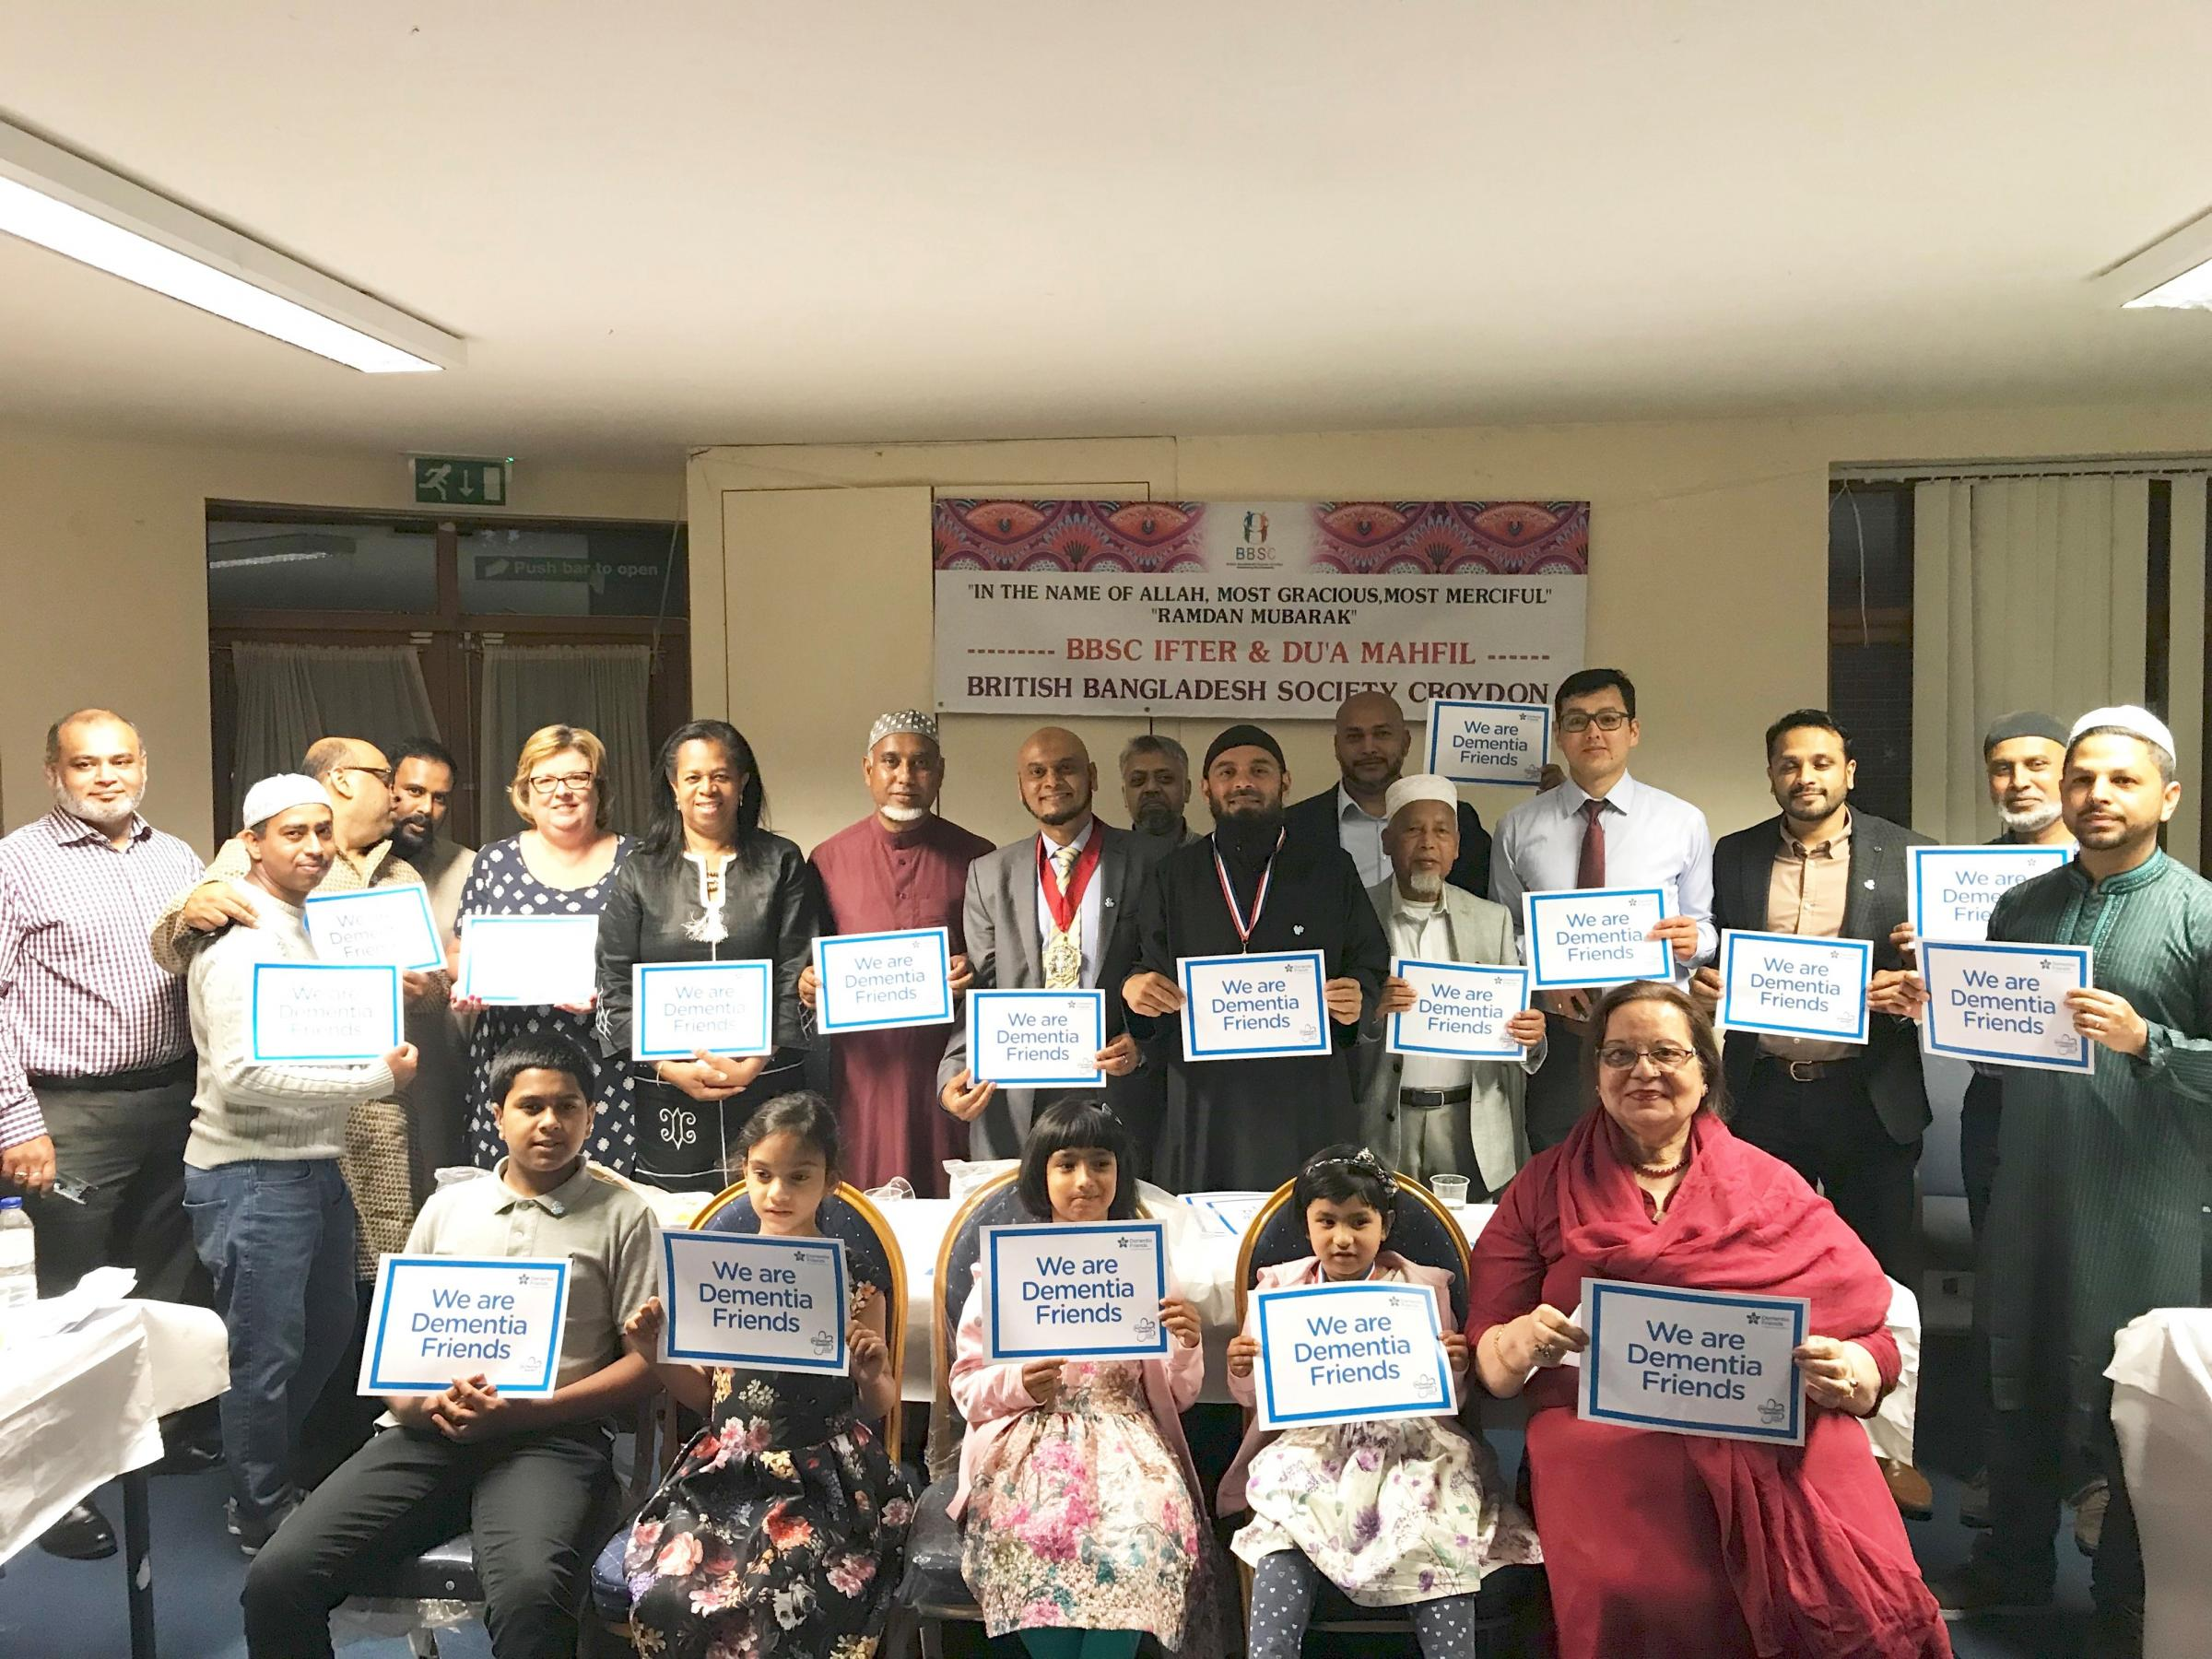 Community group hold 'Ramadan dementia friends'